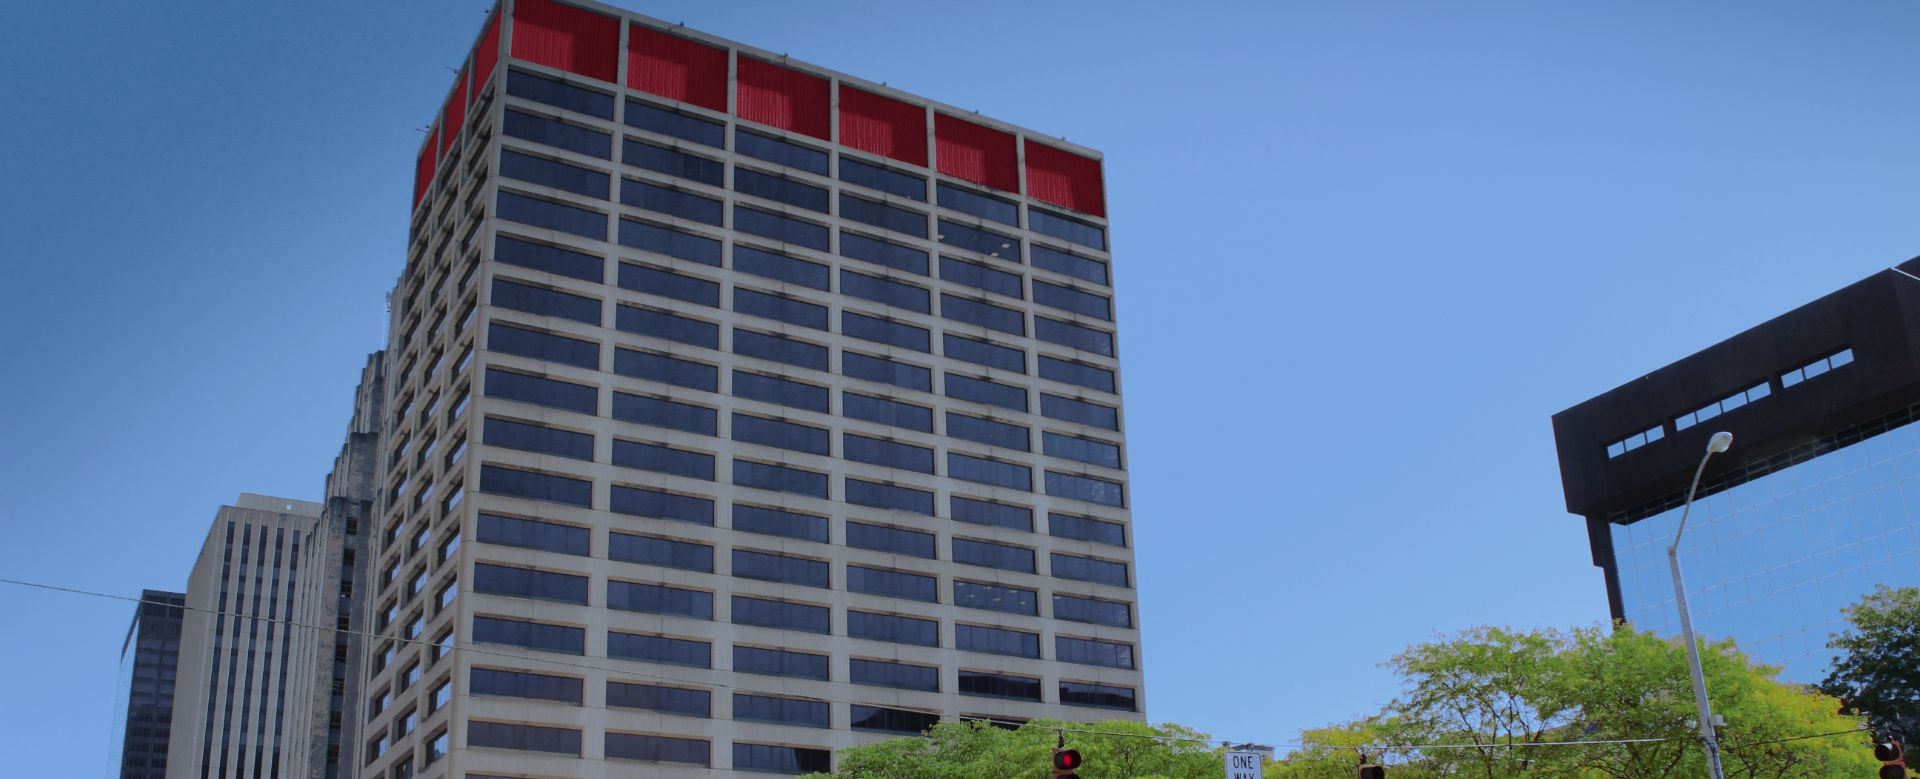 130 Building in Downtown Dayton